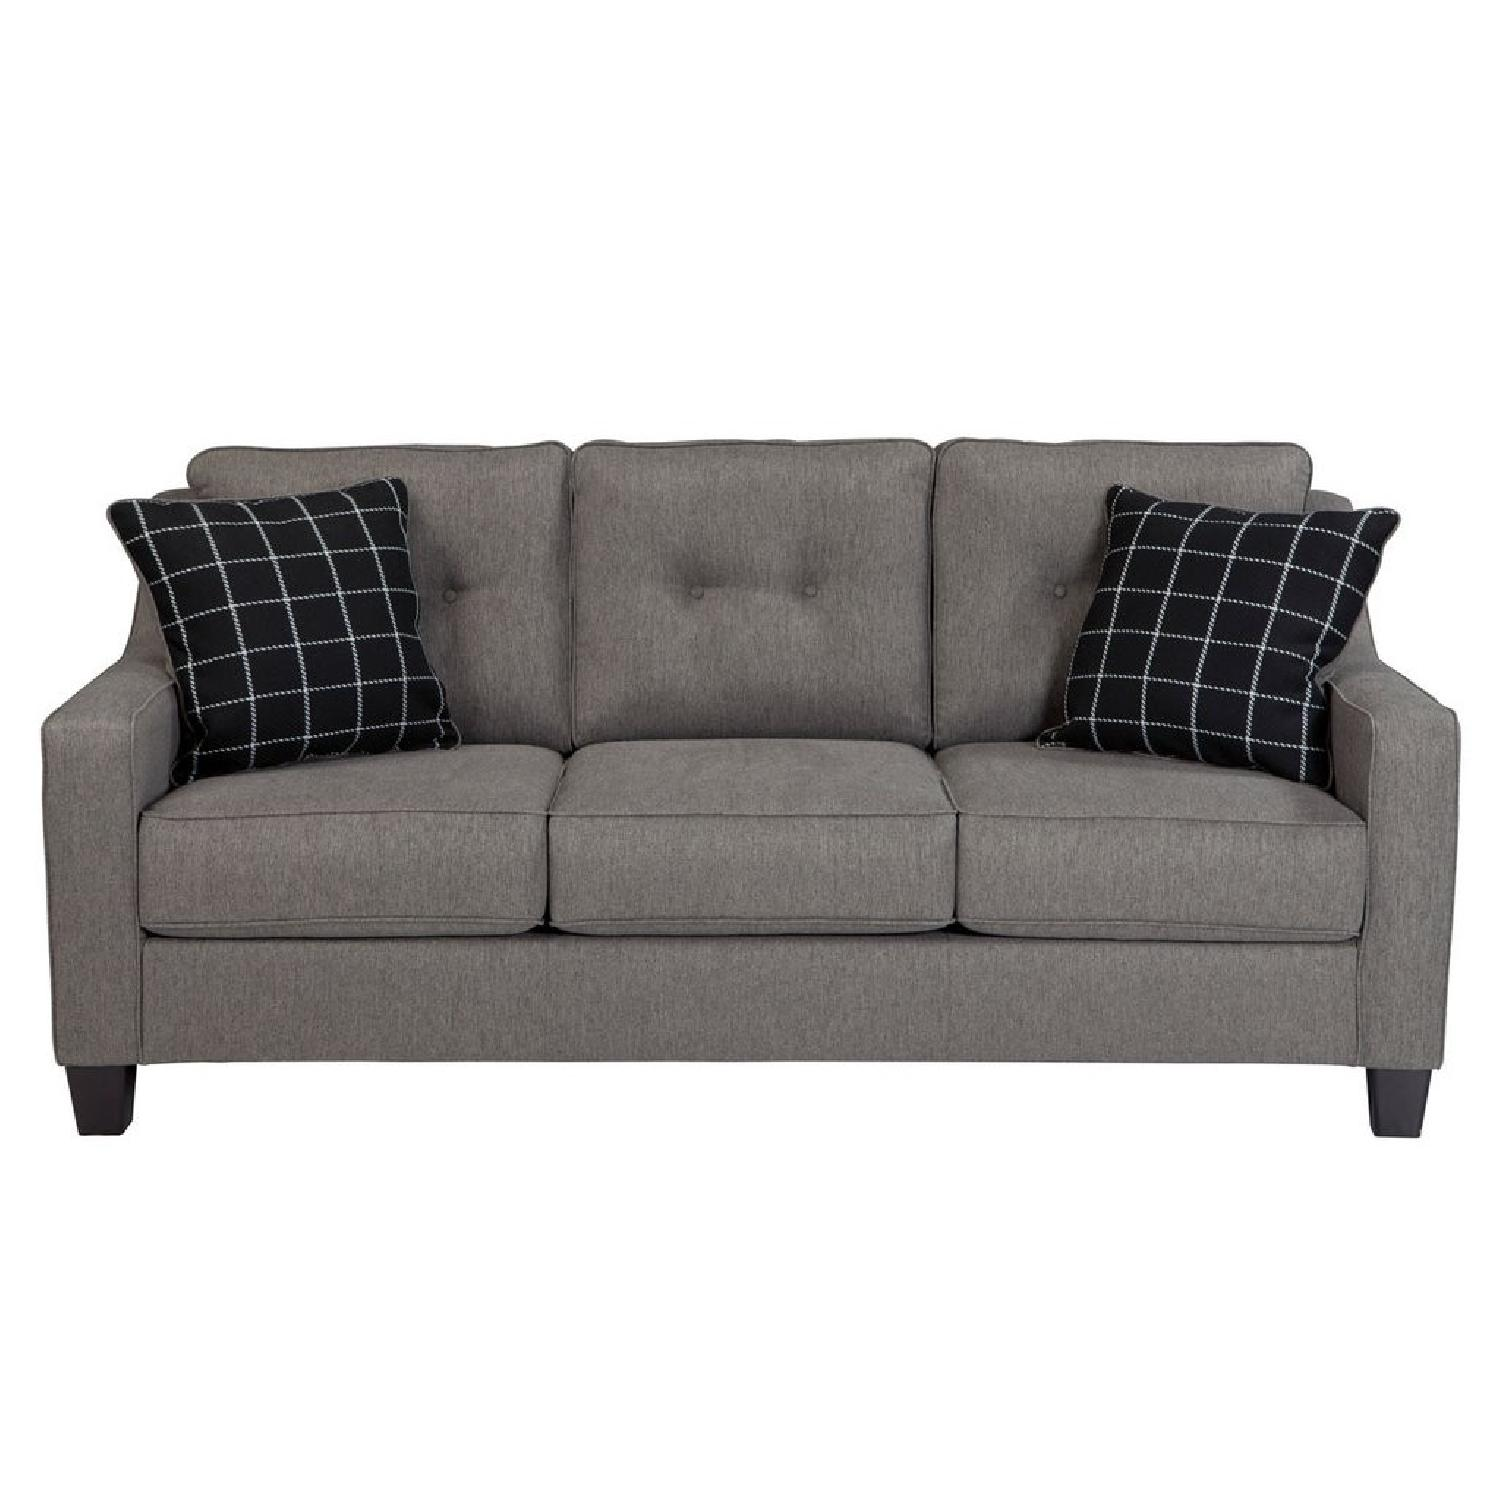 Jennifer Convertibles Grey Sleeper Sofa